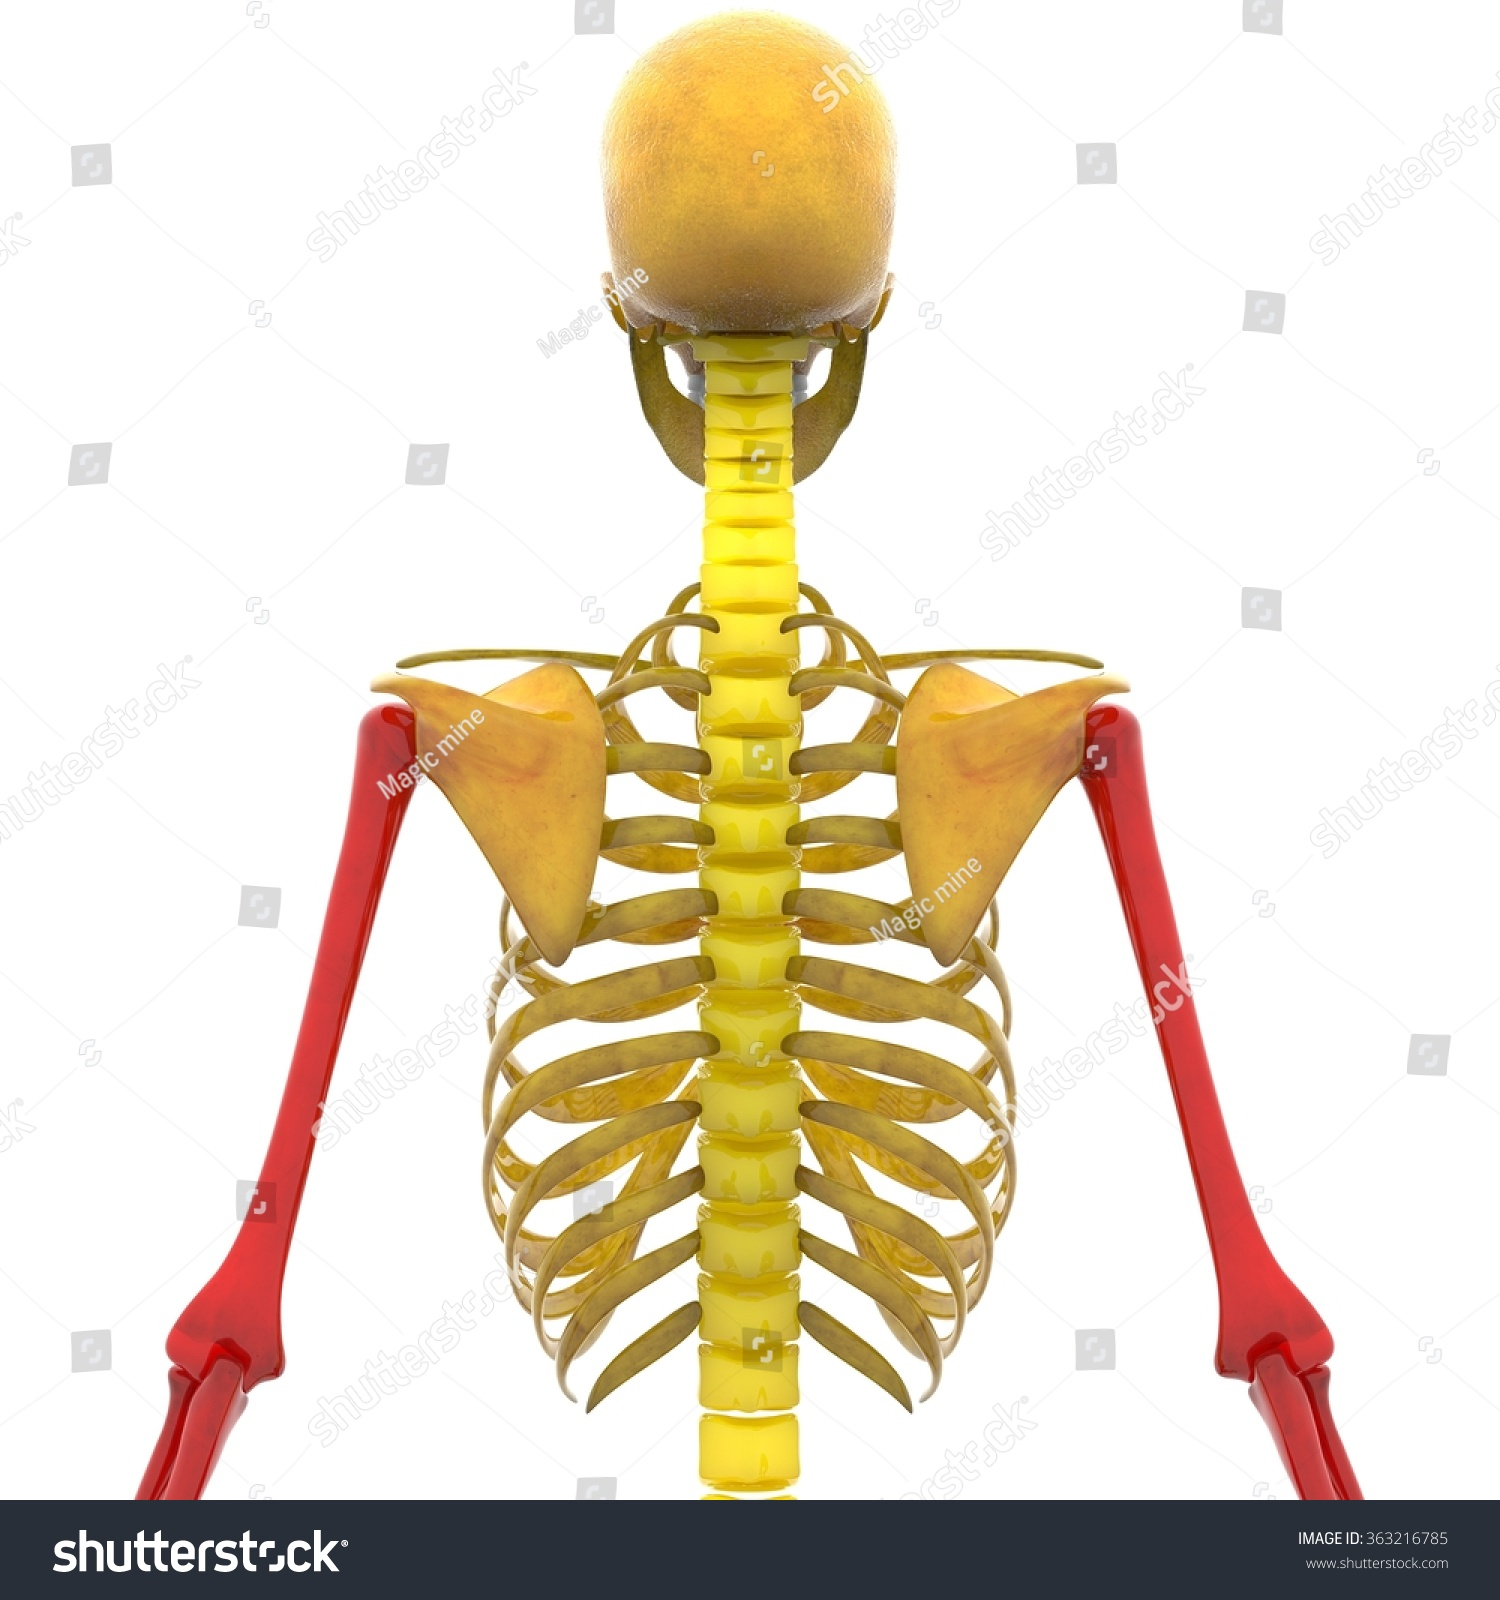 Human Skeleton Humerus Radius Ulna Bones Stock Illustration ...